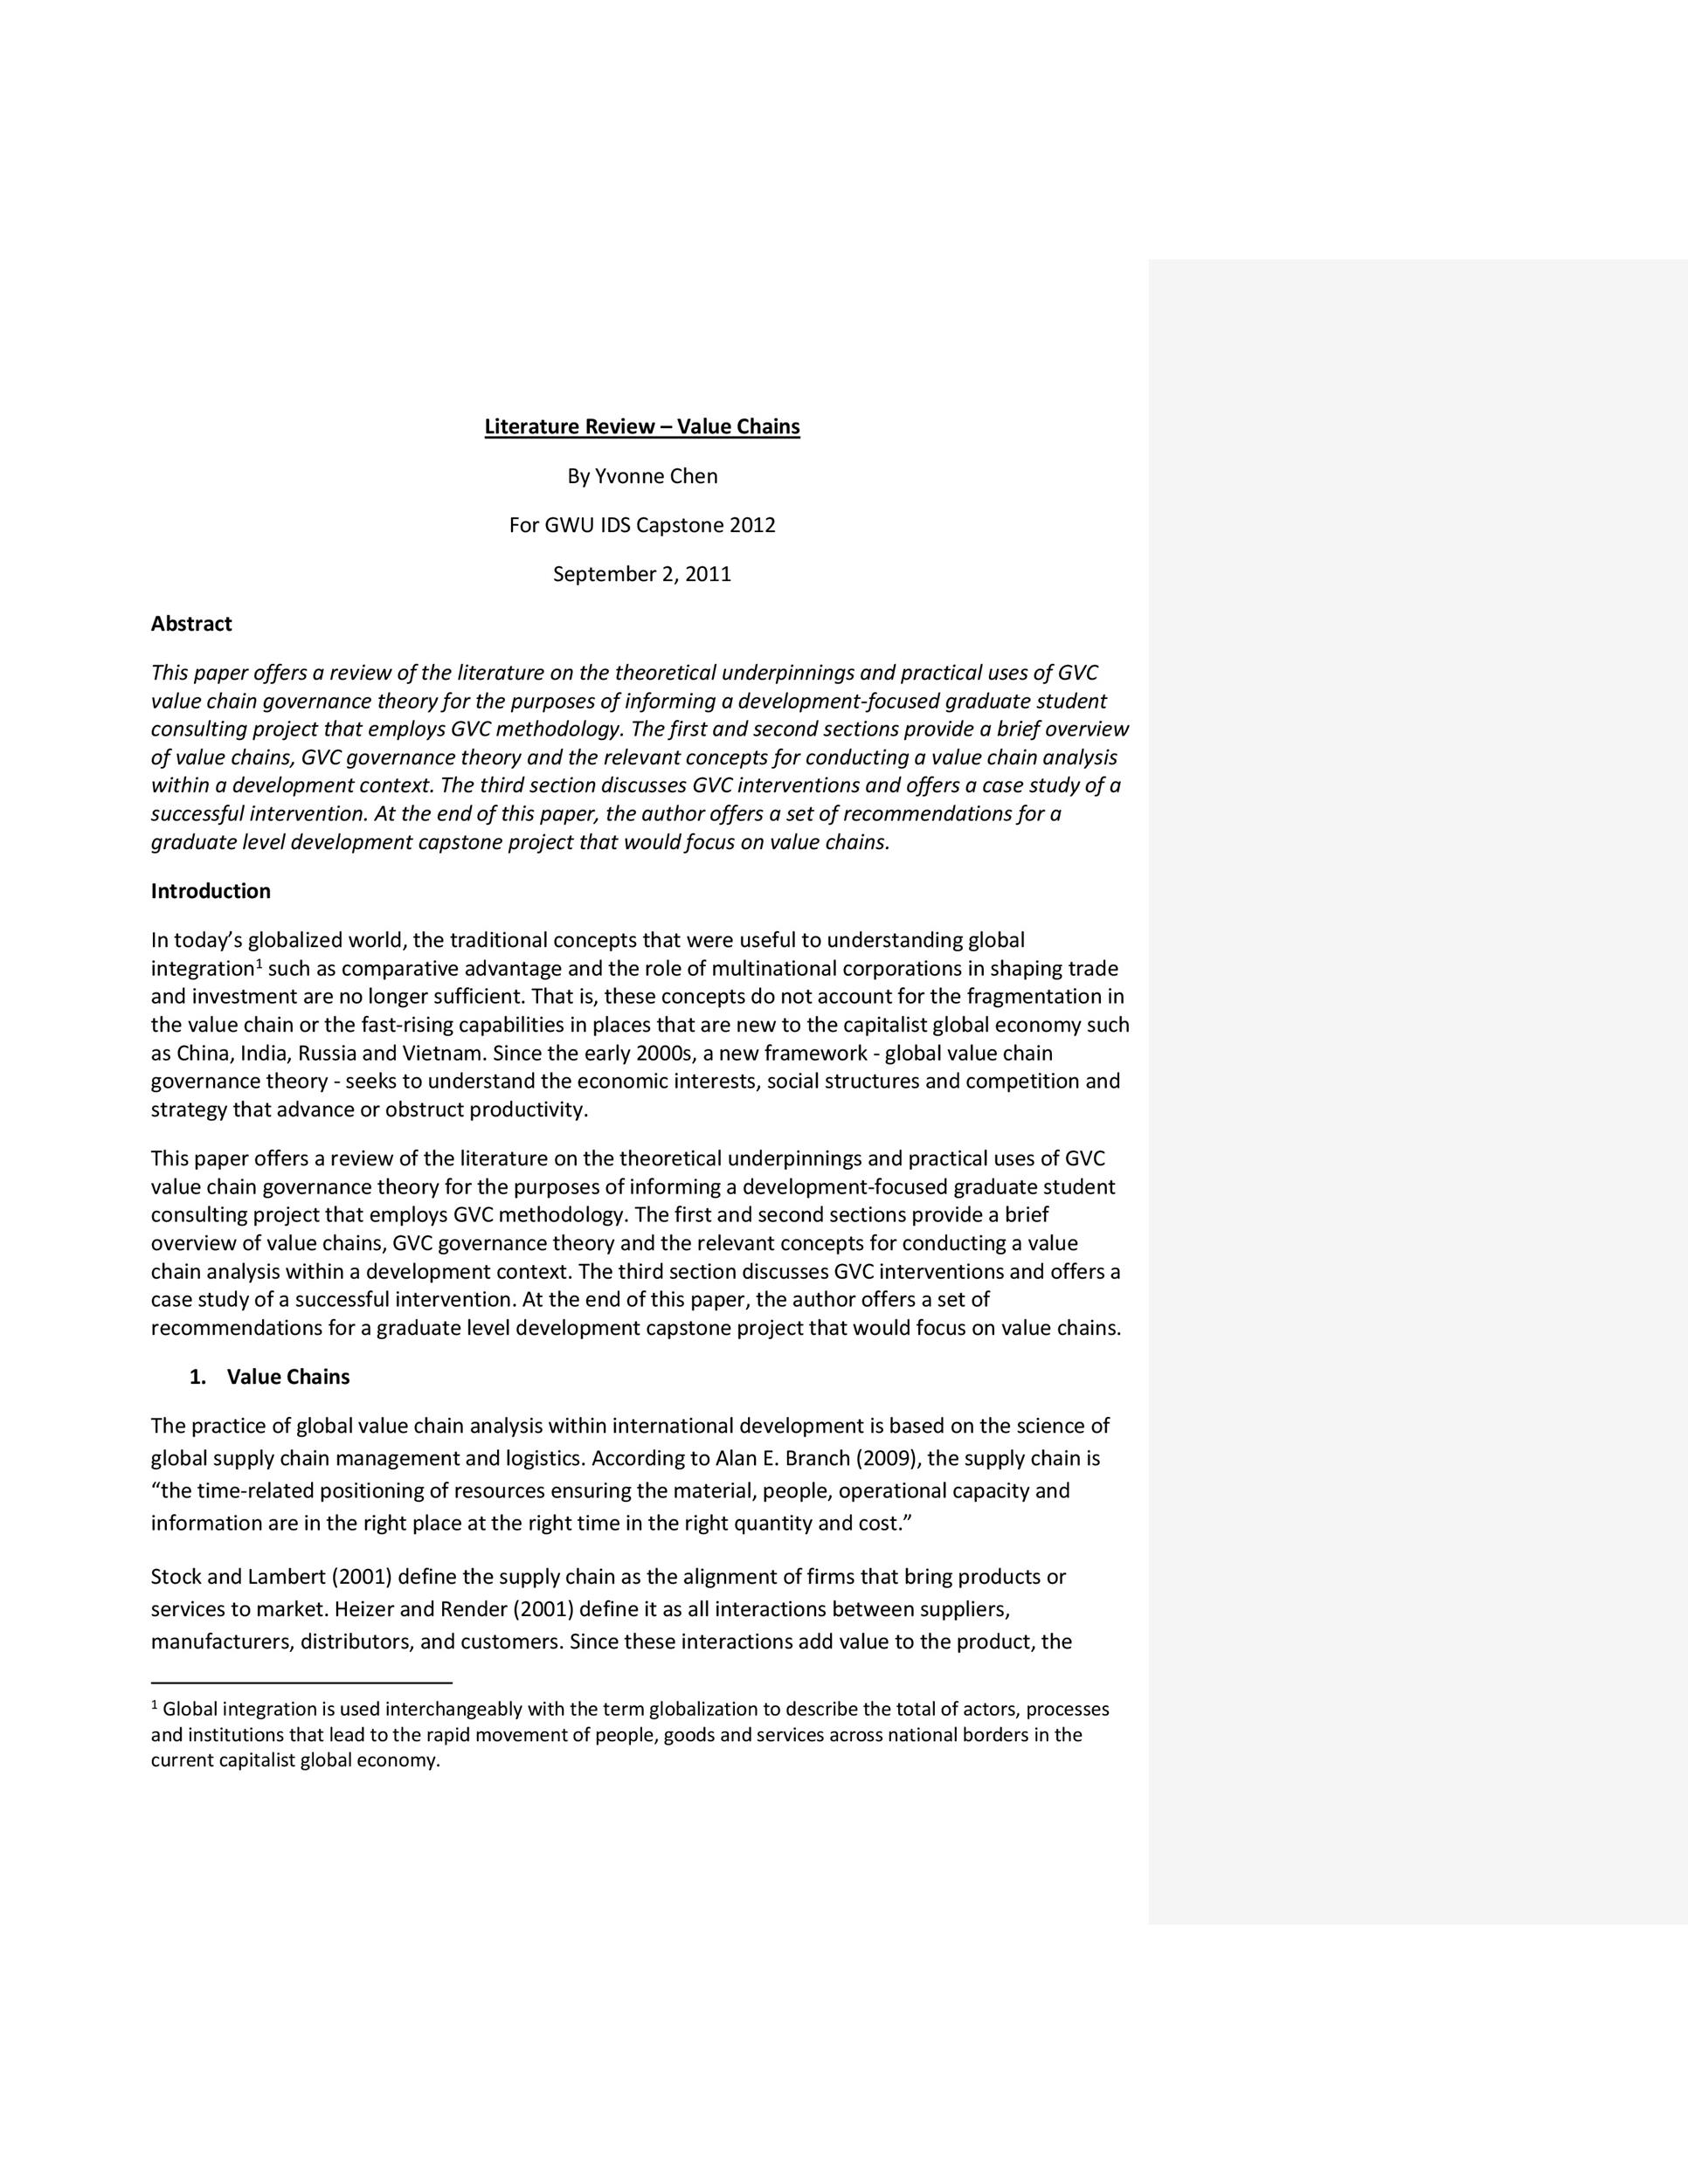 Free literature review template 31